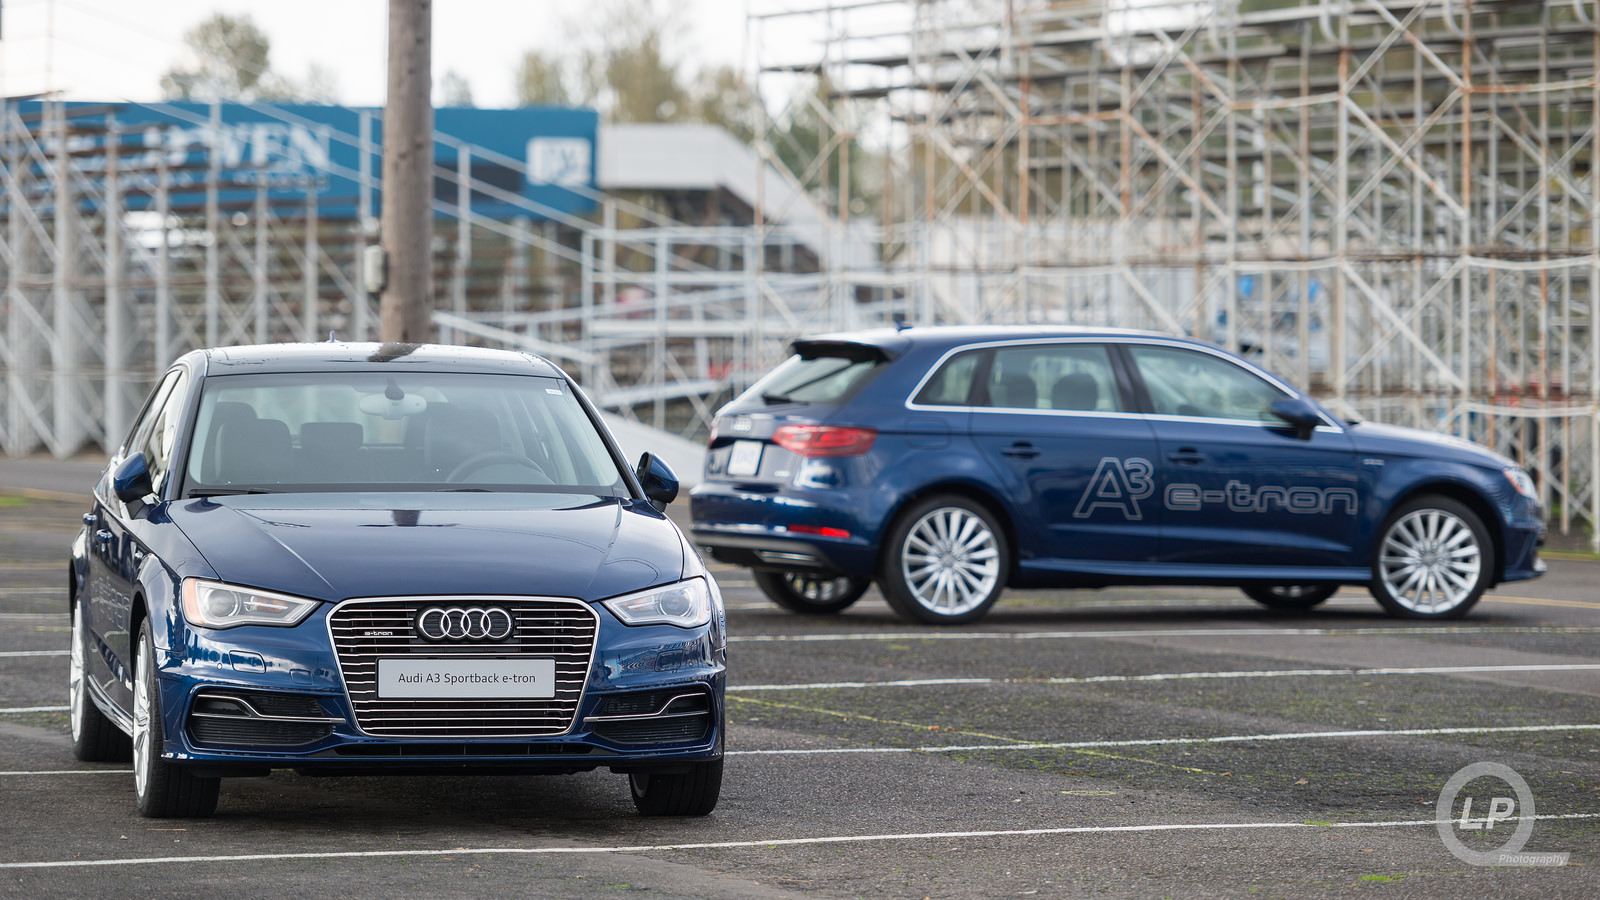 A pair of blue Audi A3 Sportback e-trons